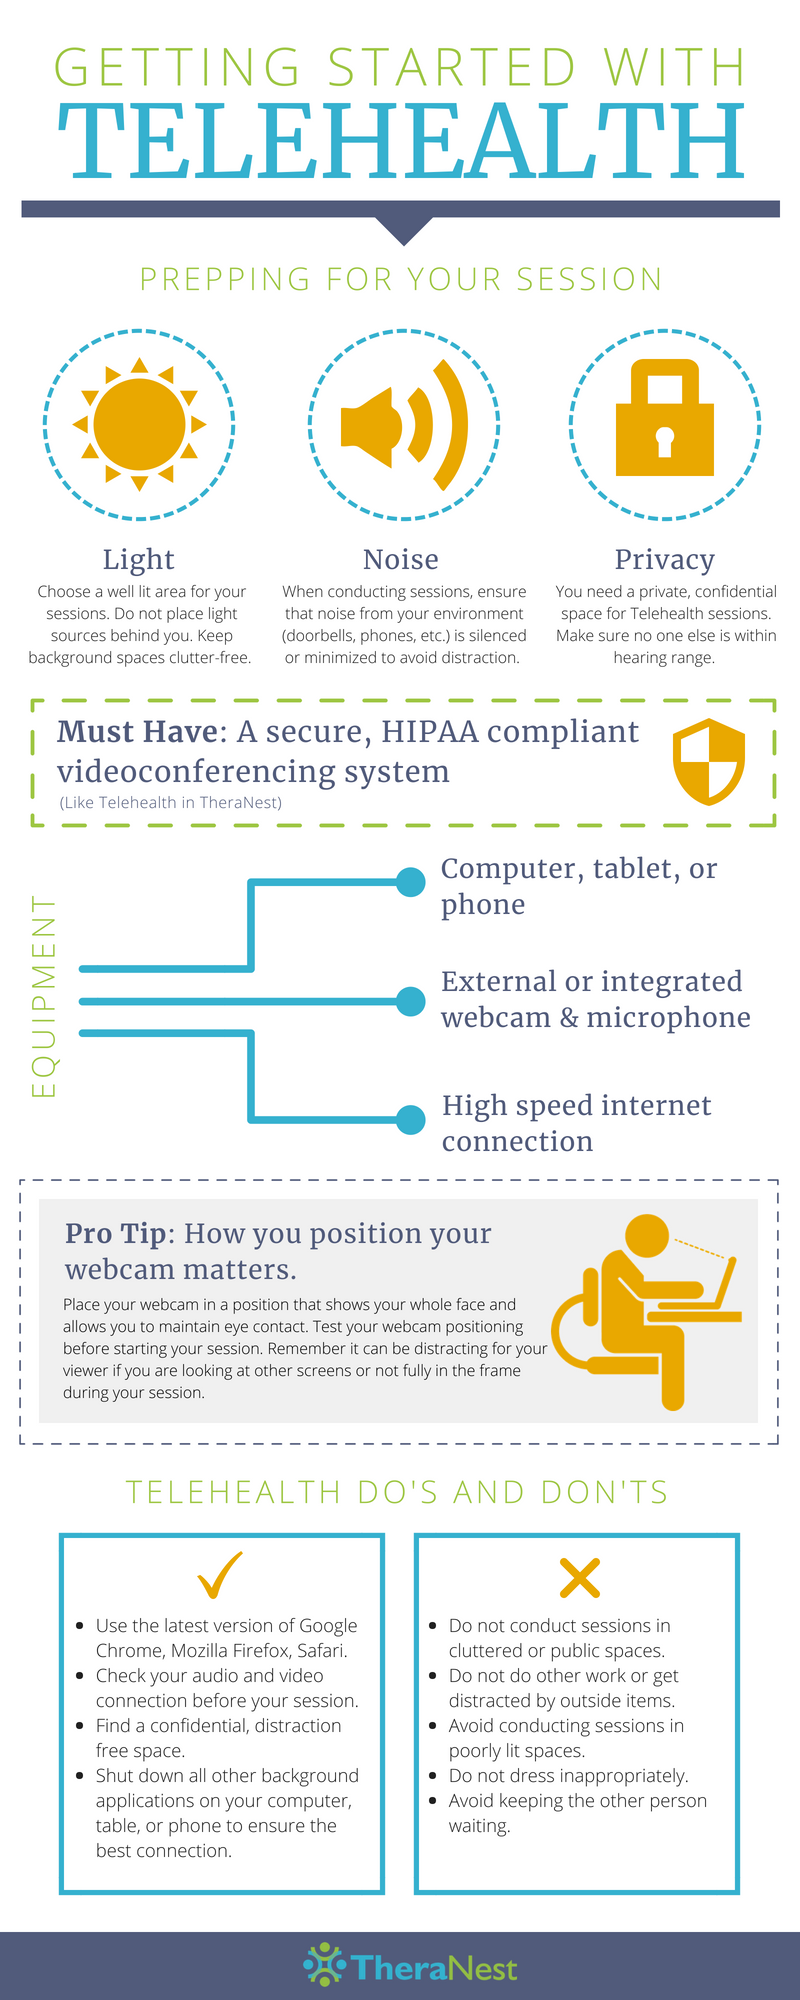 Telehealth Infographic - TheraNest Blog